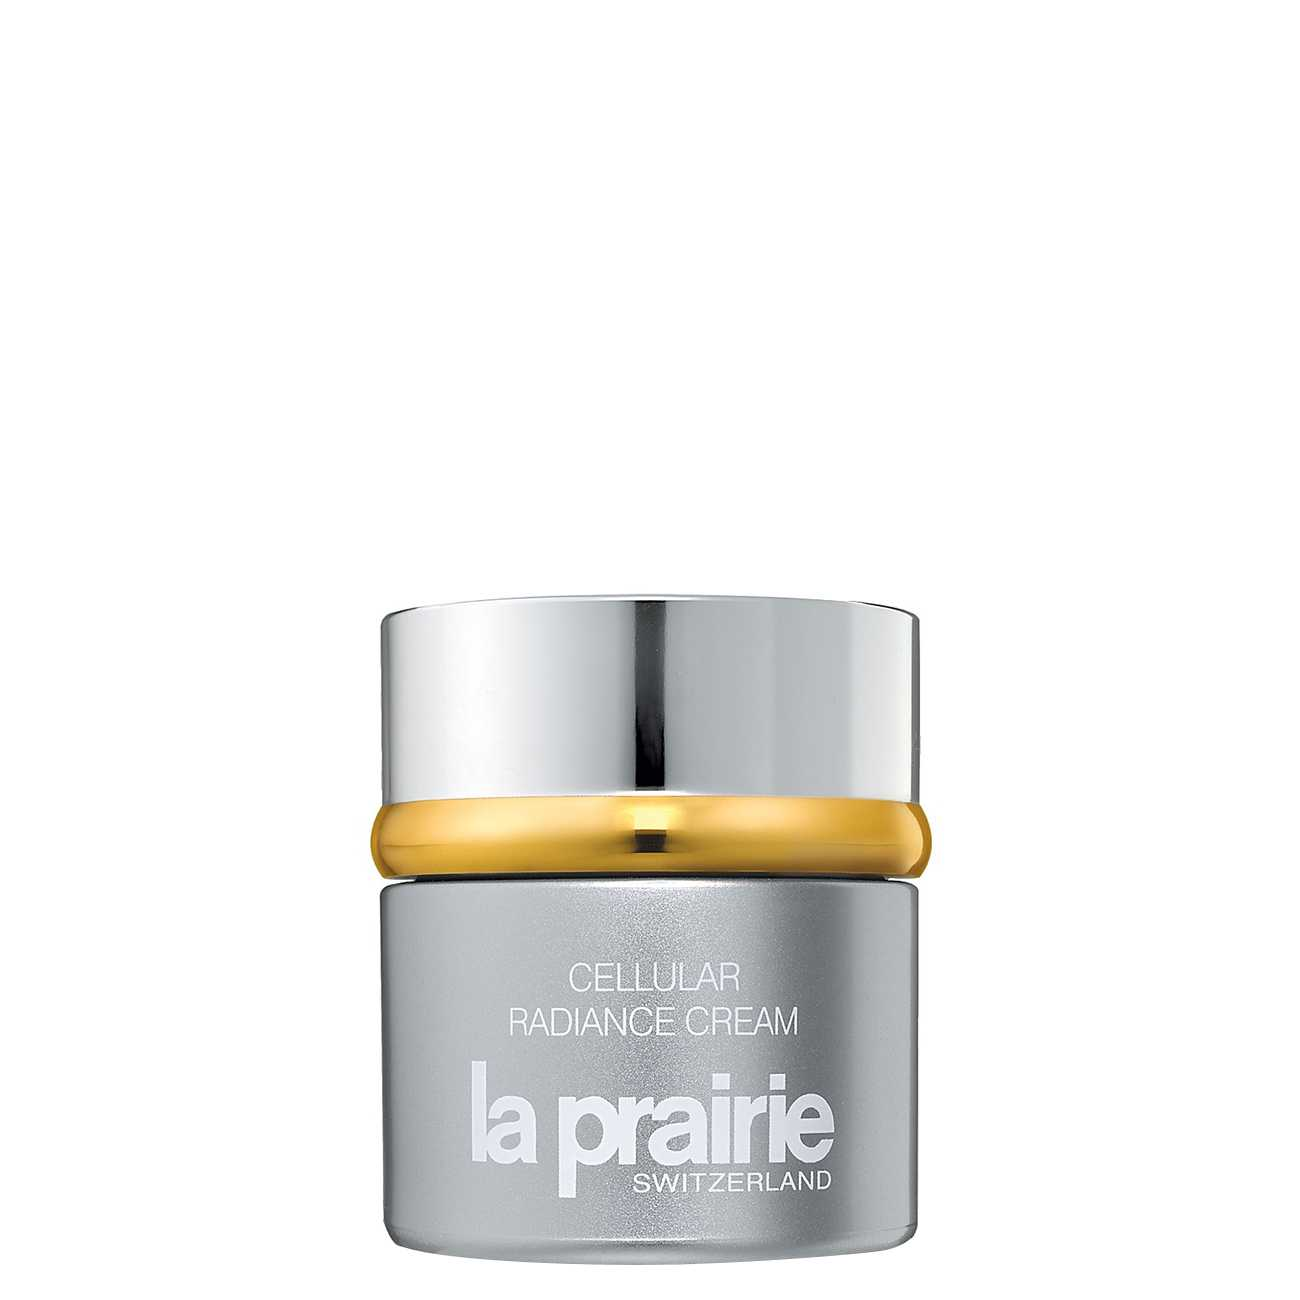 Cellular Radiance Cream 50 Ml La Prairie imagine 2021 bestvalue.eu